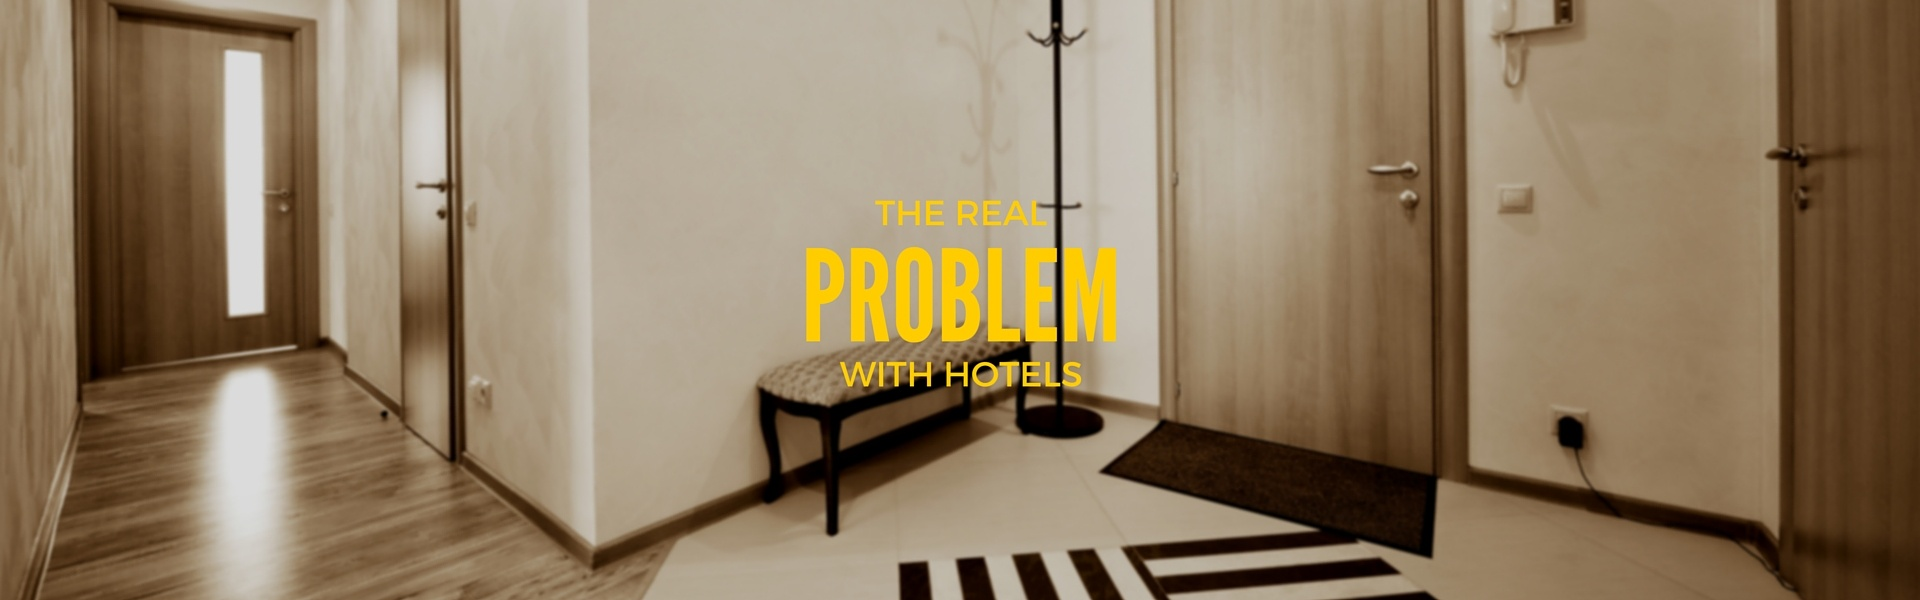 Here is the Real Problem with Hotels